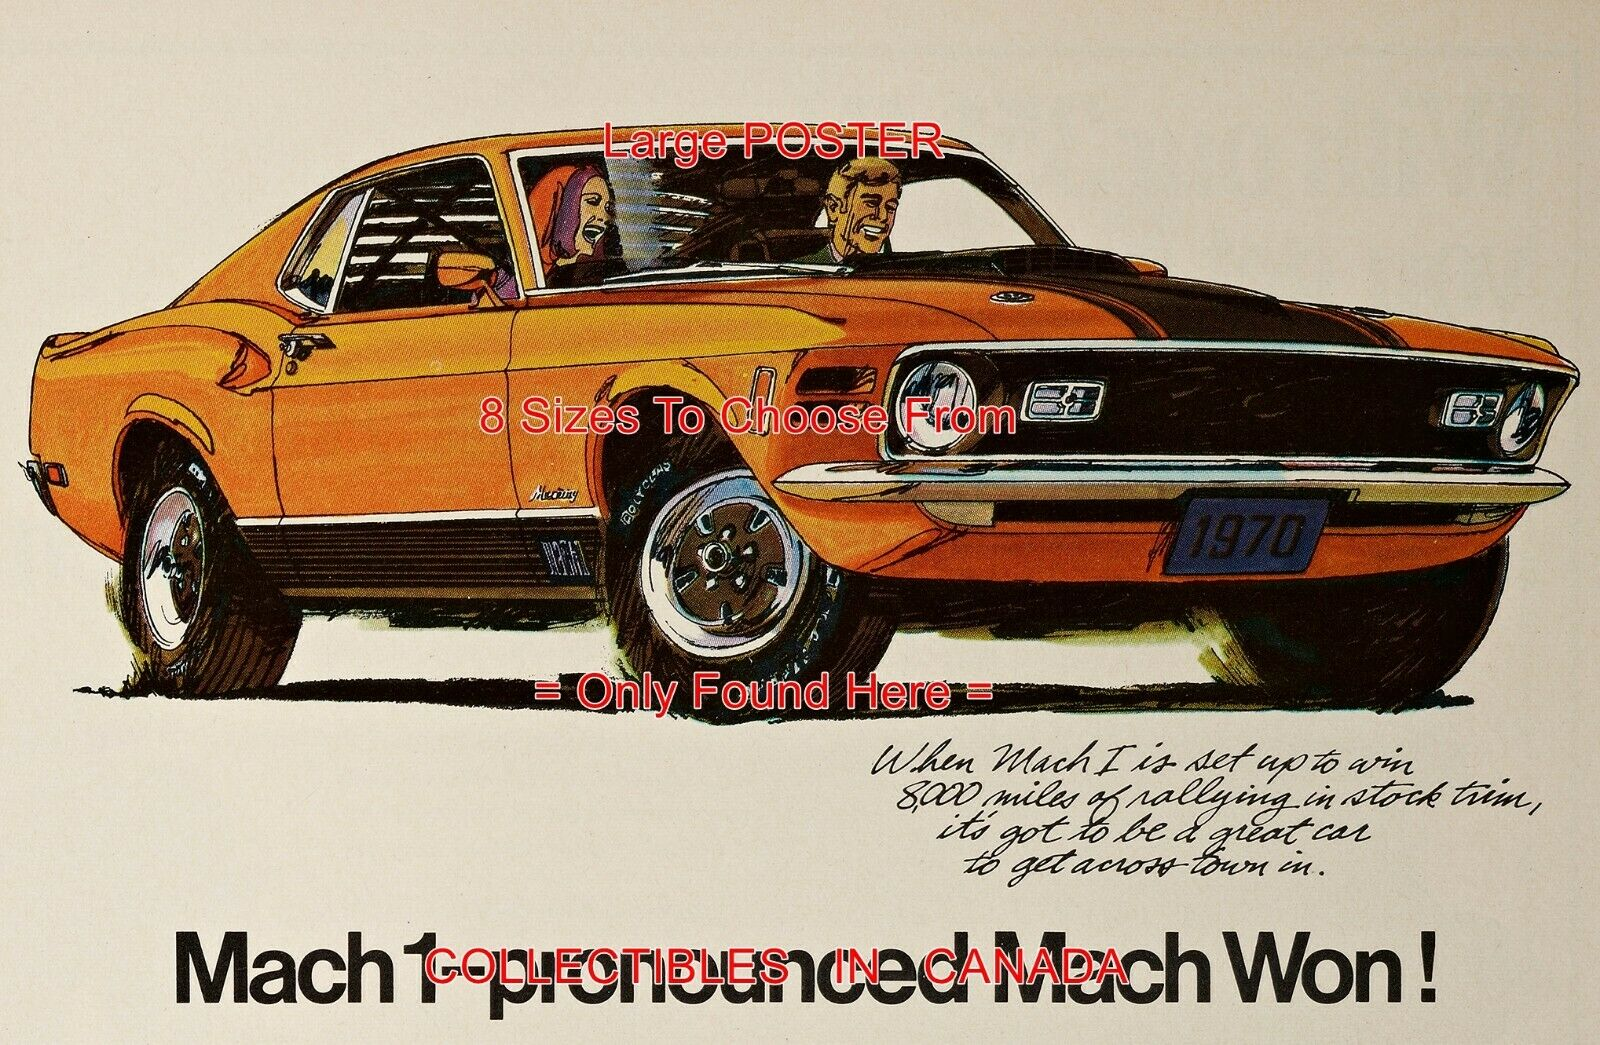 FORD MUSTANG MACH 1 1970 Pronounced Mach Won = POSTER 8 Größes 18  - 3 FEET